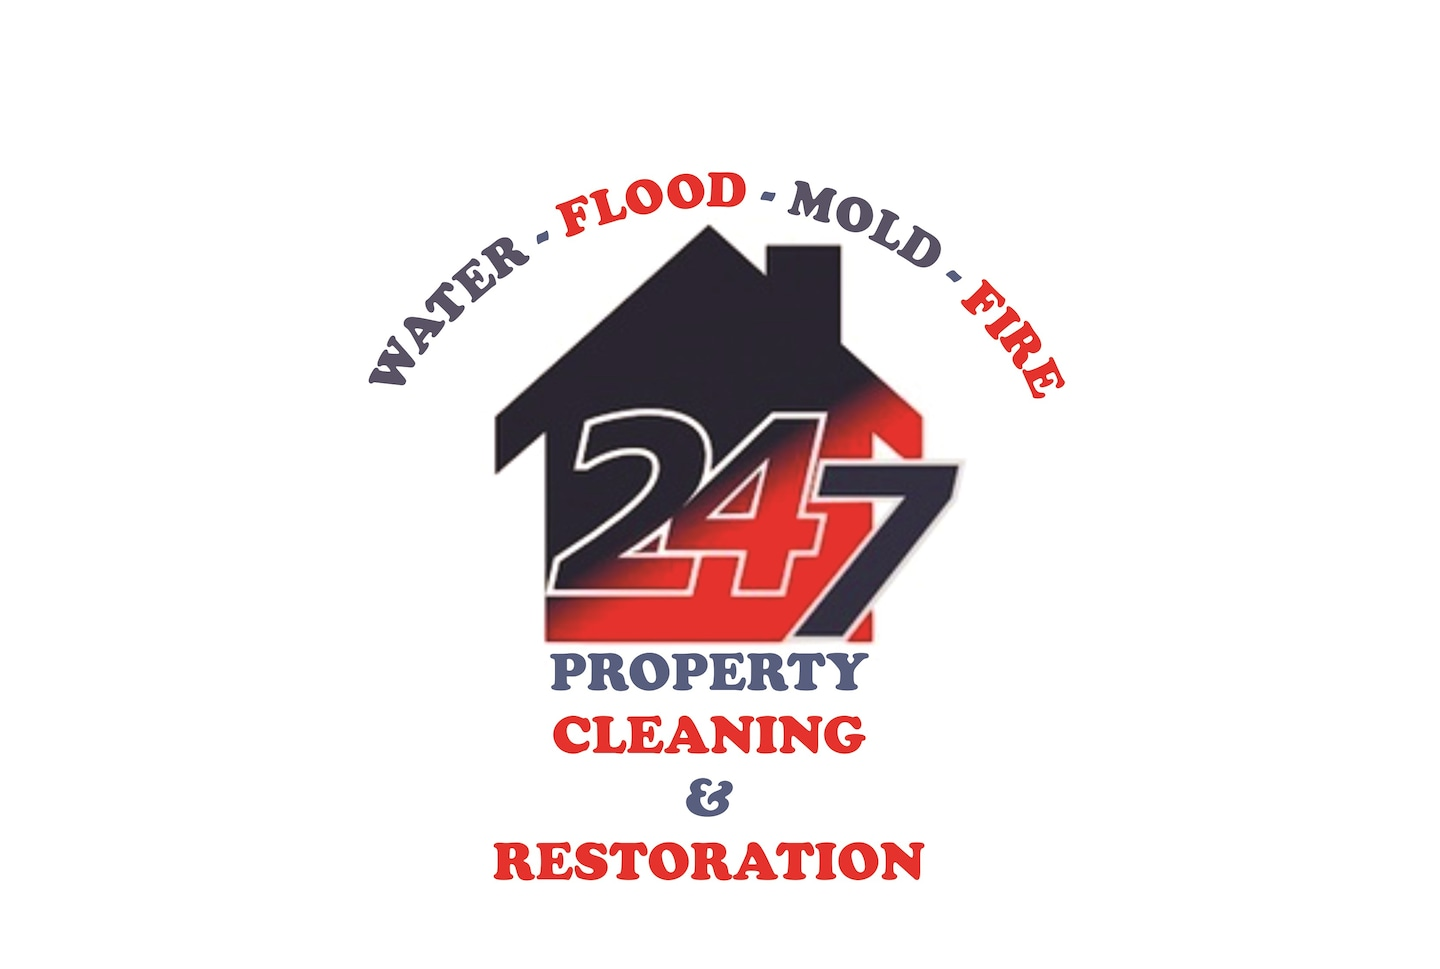 24/7 Property Cleaning & Restoration